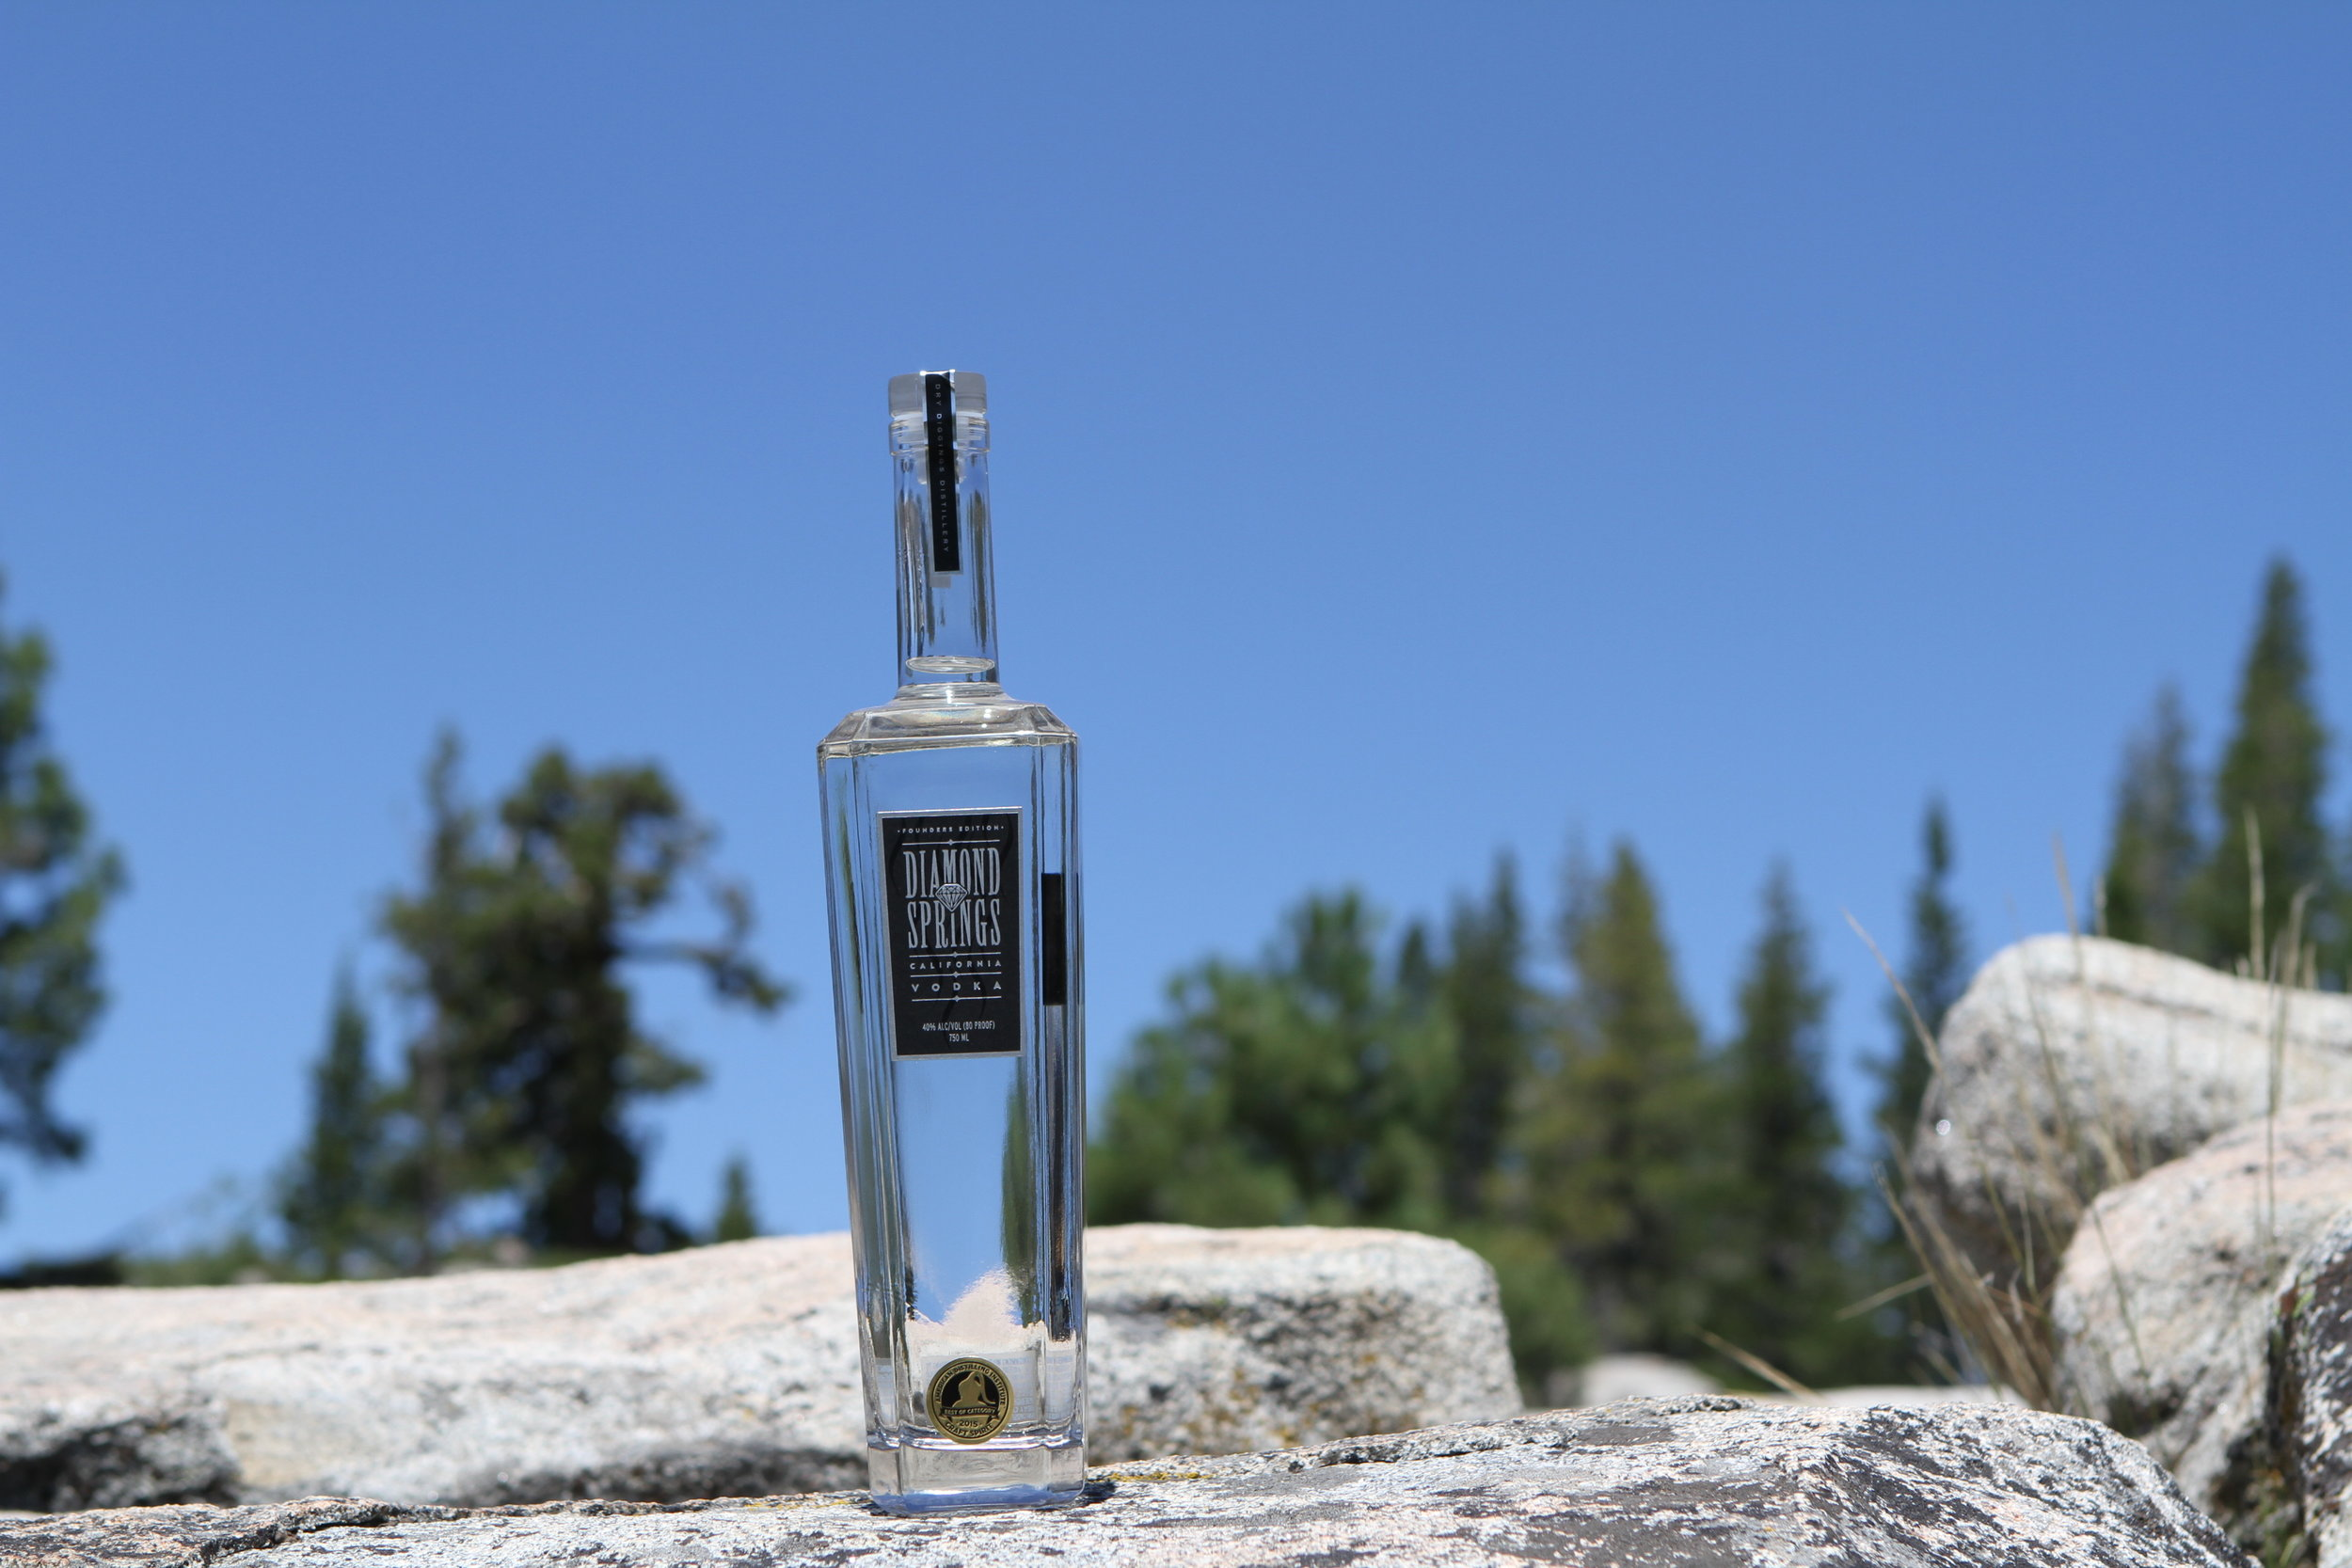 Diamond Springs Vodka - Diamond Springs Vodka takes its name from the gold rush town that supplied the fresh drinking water for miners away from all the dangerous chemicals. This vodka was designed to take advantage of the multiple stills Dry Diggings has on site to create a unique product in a crowded spirit space. Most vodkas rely on sugars, citric acid or other additives to develop their unique characteristics. We distill this vodka from local Northern California wines for it's subtle and smooth taste. We use nothing post distillation in any of our products to create our tastes, mouthfeel or finish.From the first sip to the last, Diamond Springs Vodka gives smooth, crisp and clean a new definition. This vodka works as straight sipper, over ice or a dirty martini. Our recommendation is to keep Diamond Springs Vodka in lighter cocktails where it can shine.80PF